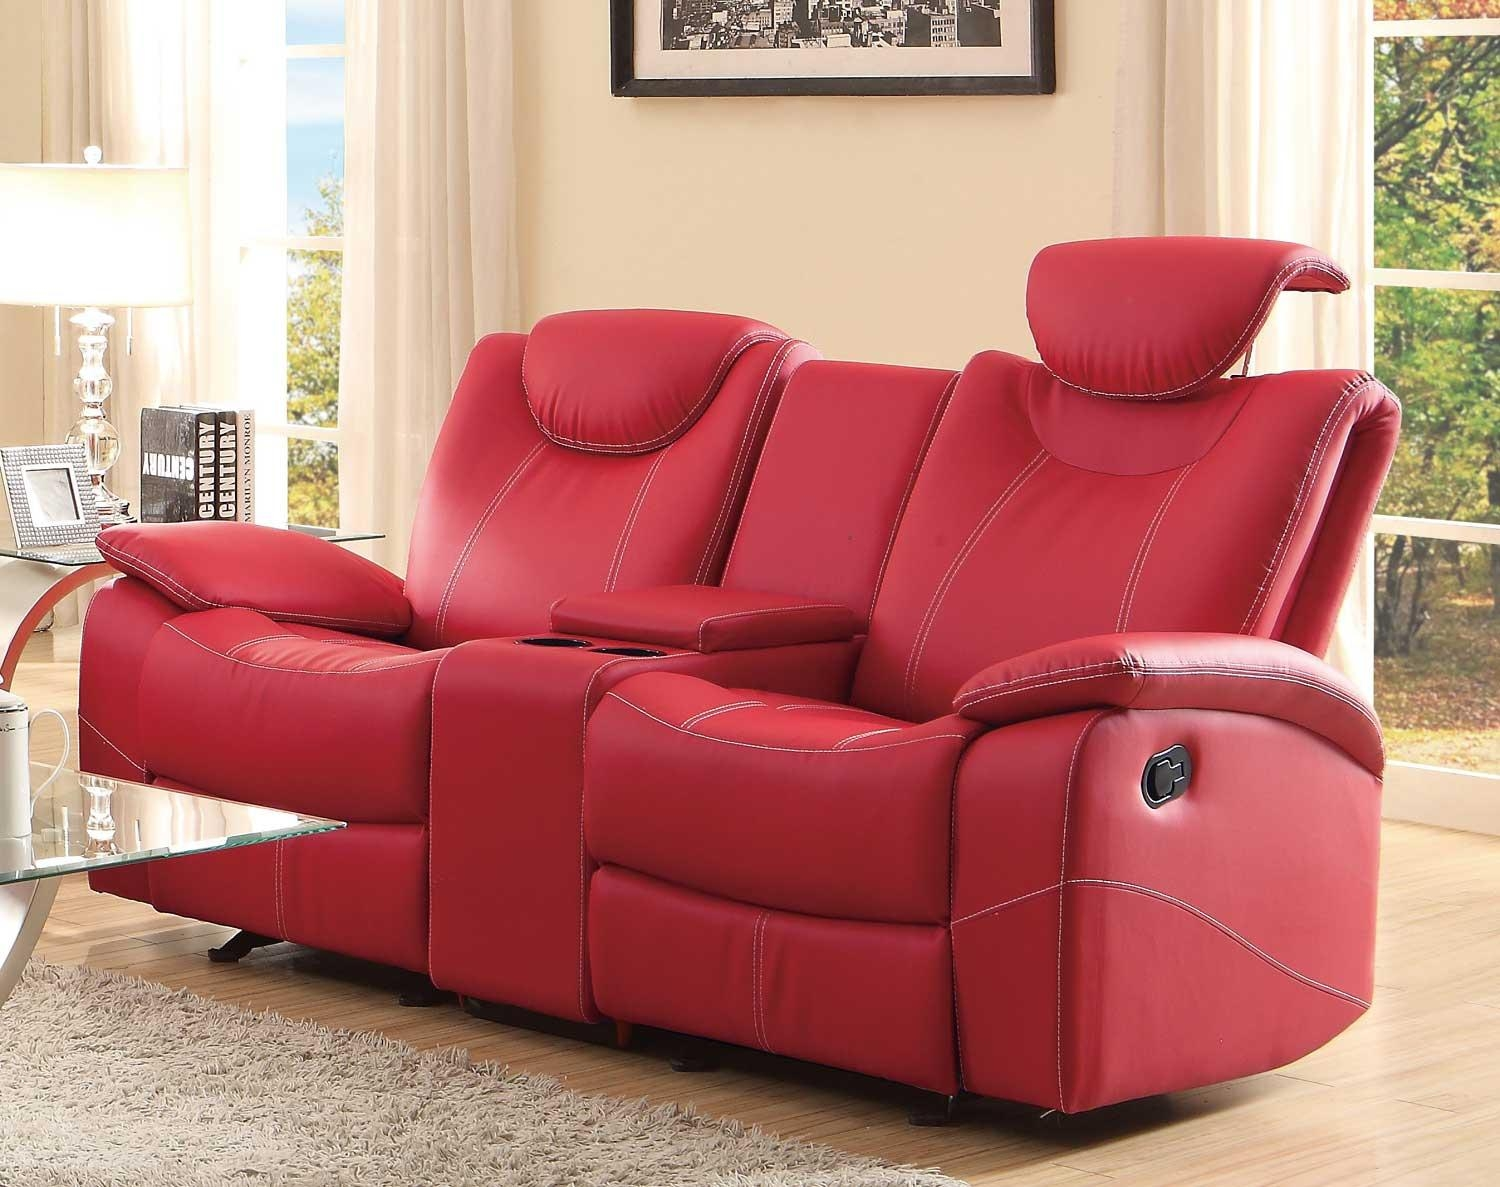 20 best ideas sofas with consoles sofa ideas. Black Bedroom Furniture Sets. Home Design Ideas